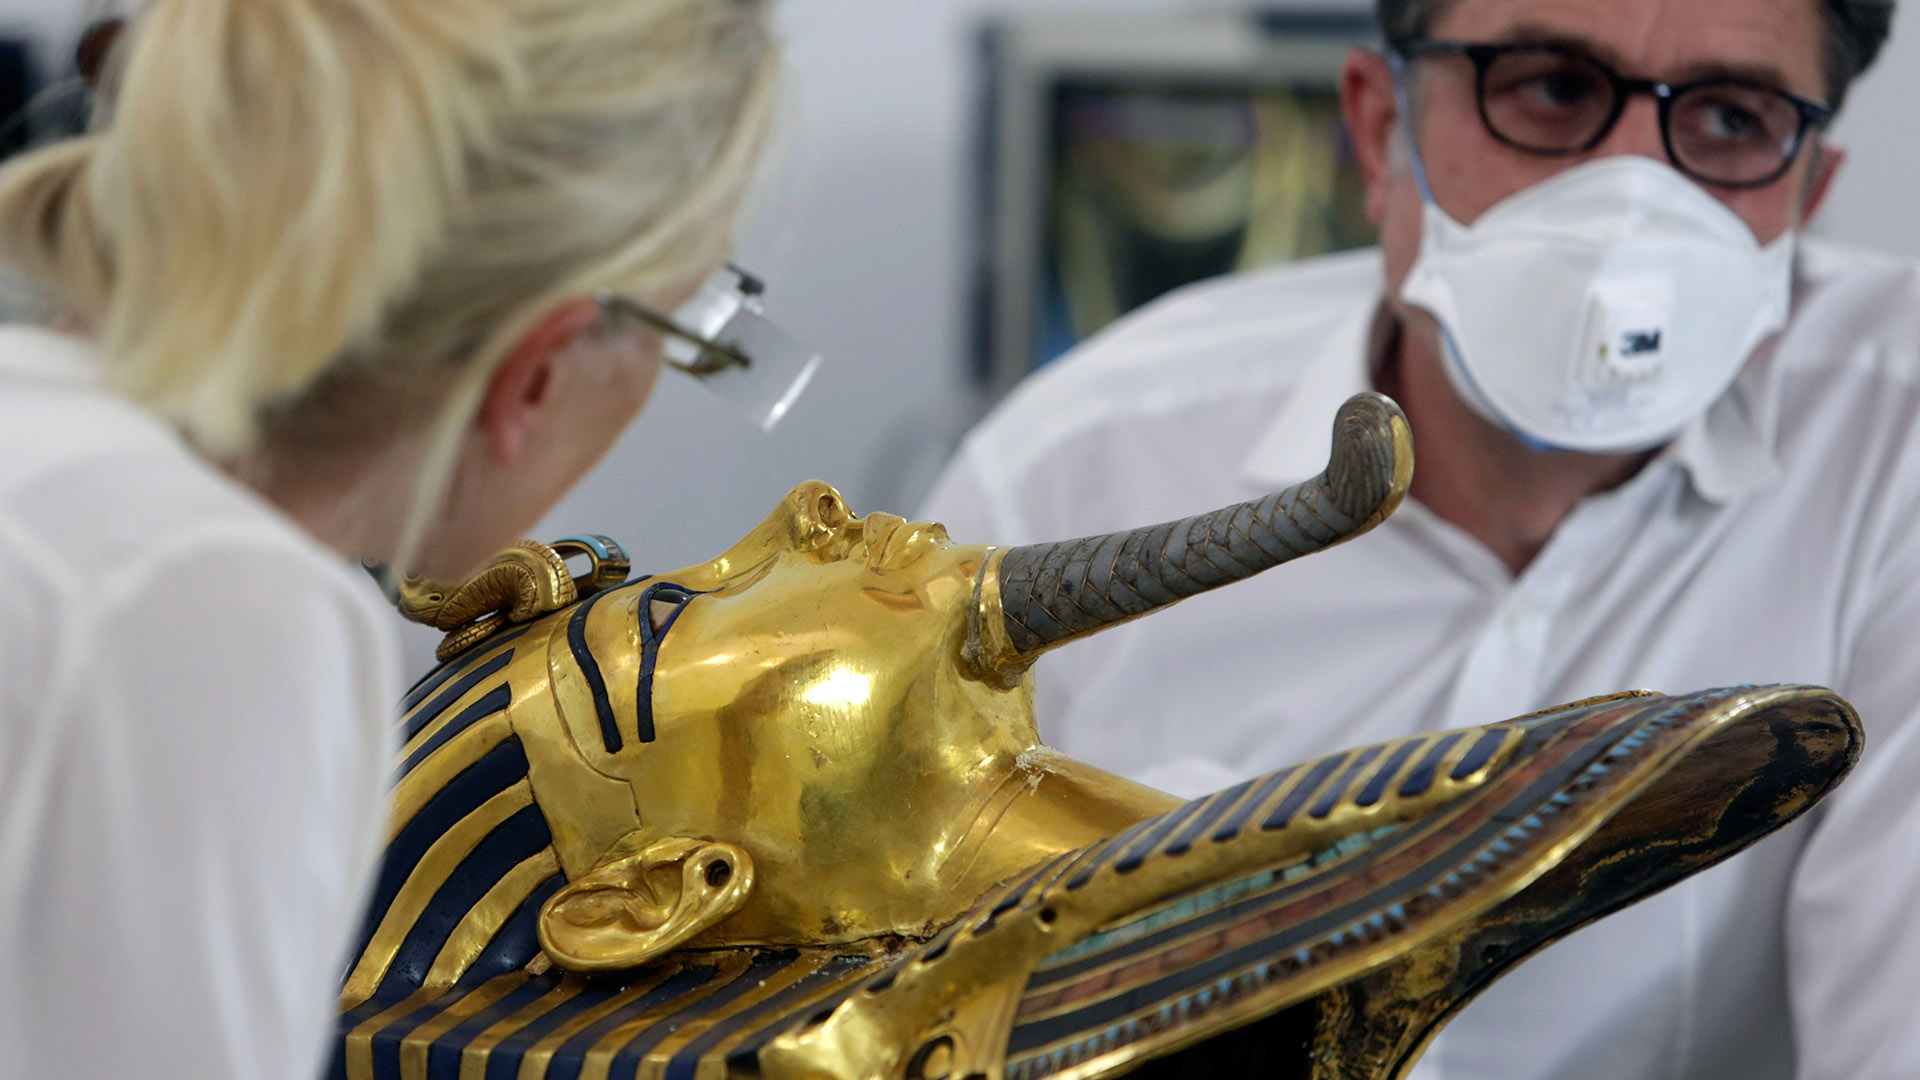 Efforts Underway to Restore King Tut's Mask After Botched Epoxy Job